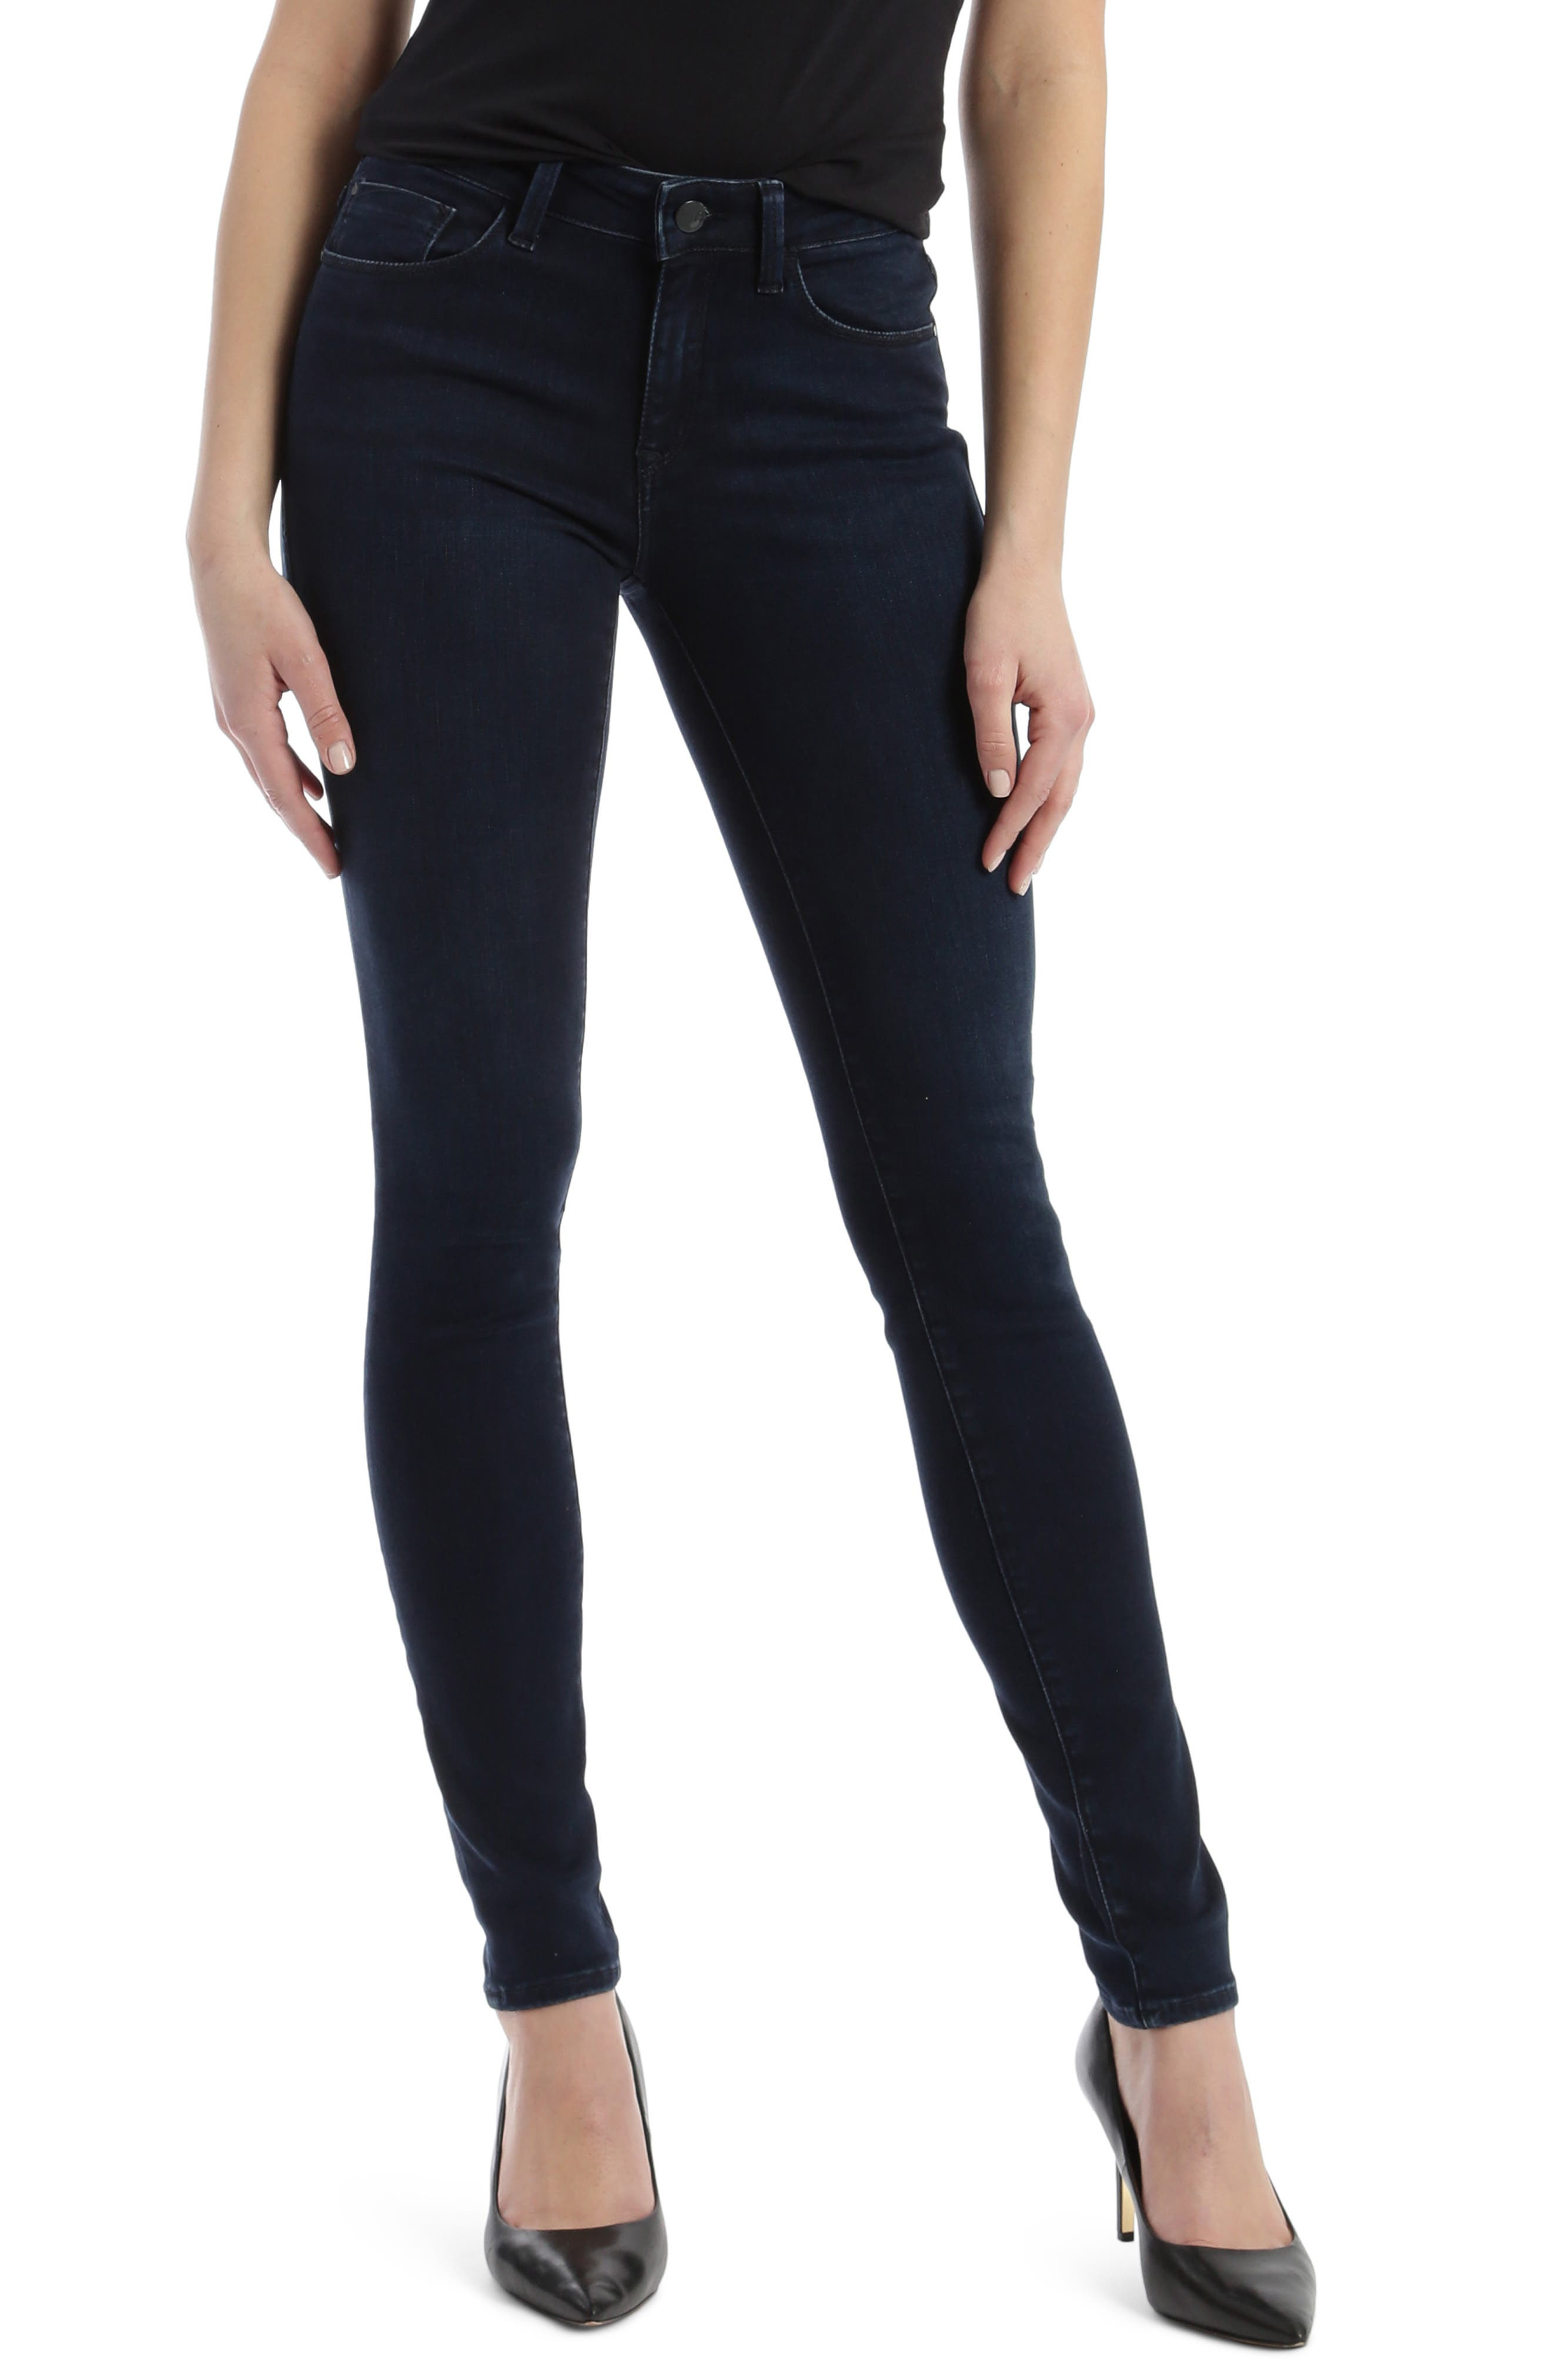 A deep, dark blue plays up the sleek look of these snug-fitting skinnies in soft premium denim with just the right amount of stretch. Style Name: Mavi Jeans Deep Gold Adriana Stretch Super Skinny Jeans (Deep Pima). Style Number: 5936436. Available in stores.